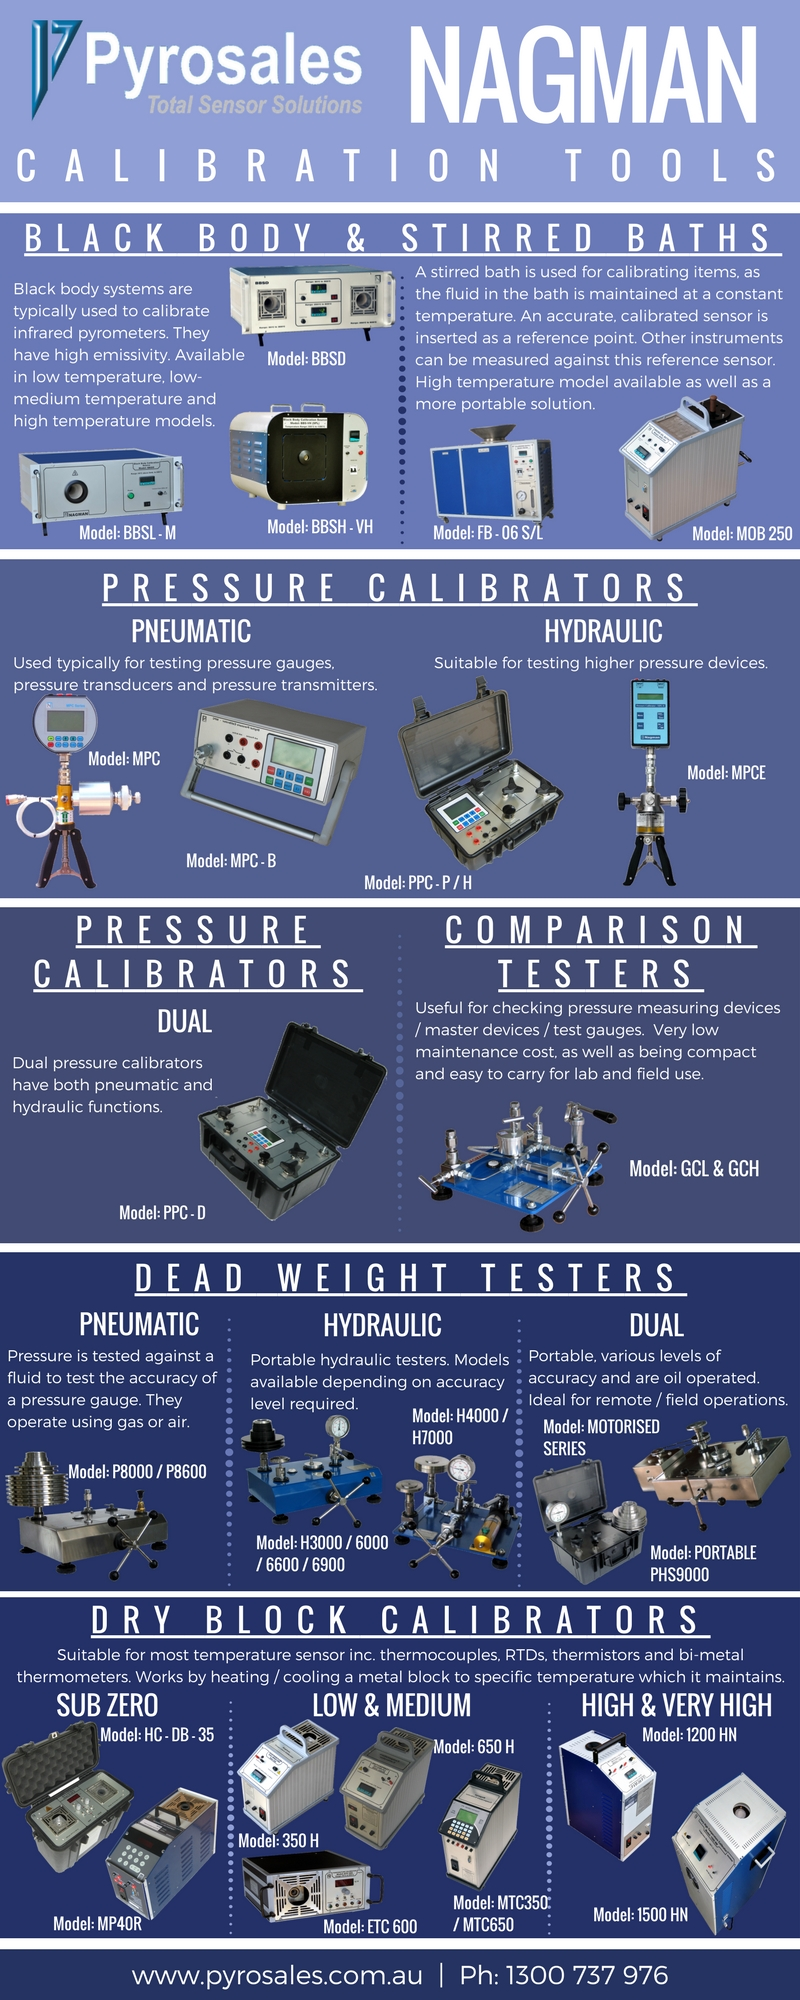 NAGMAN: calibration tools